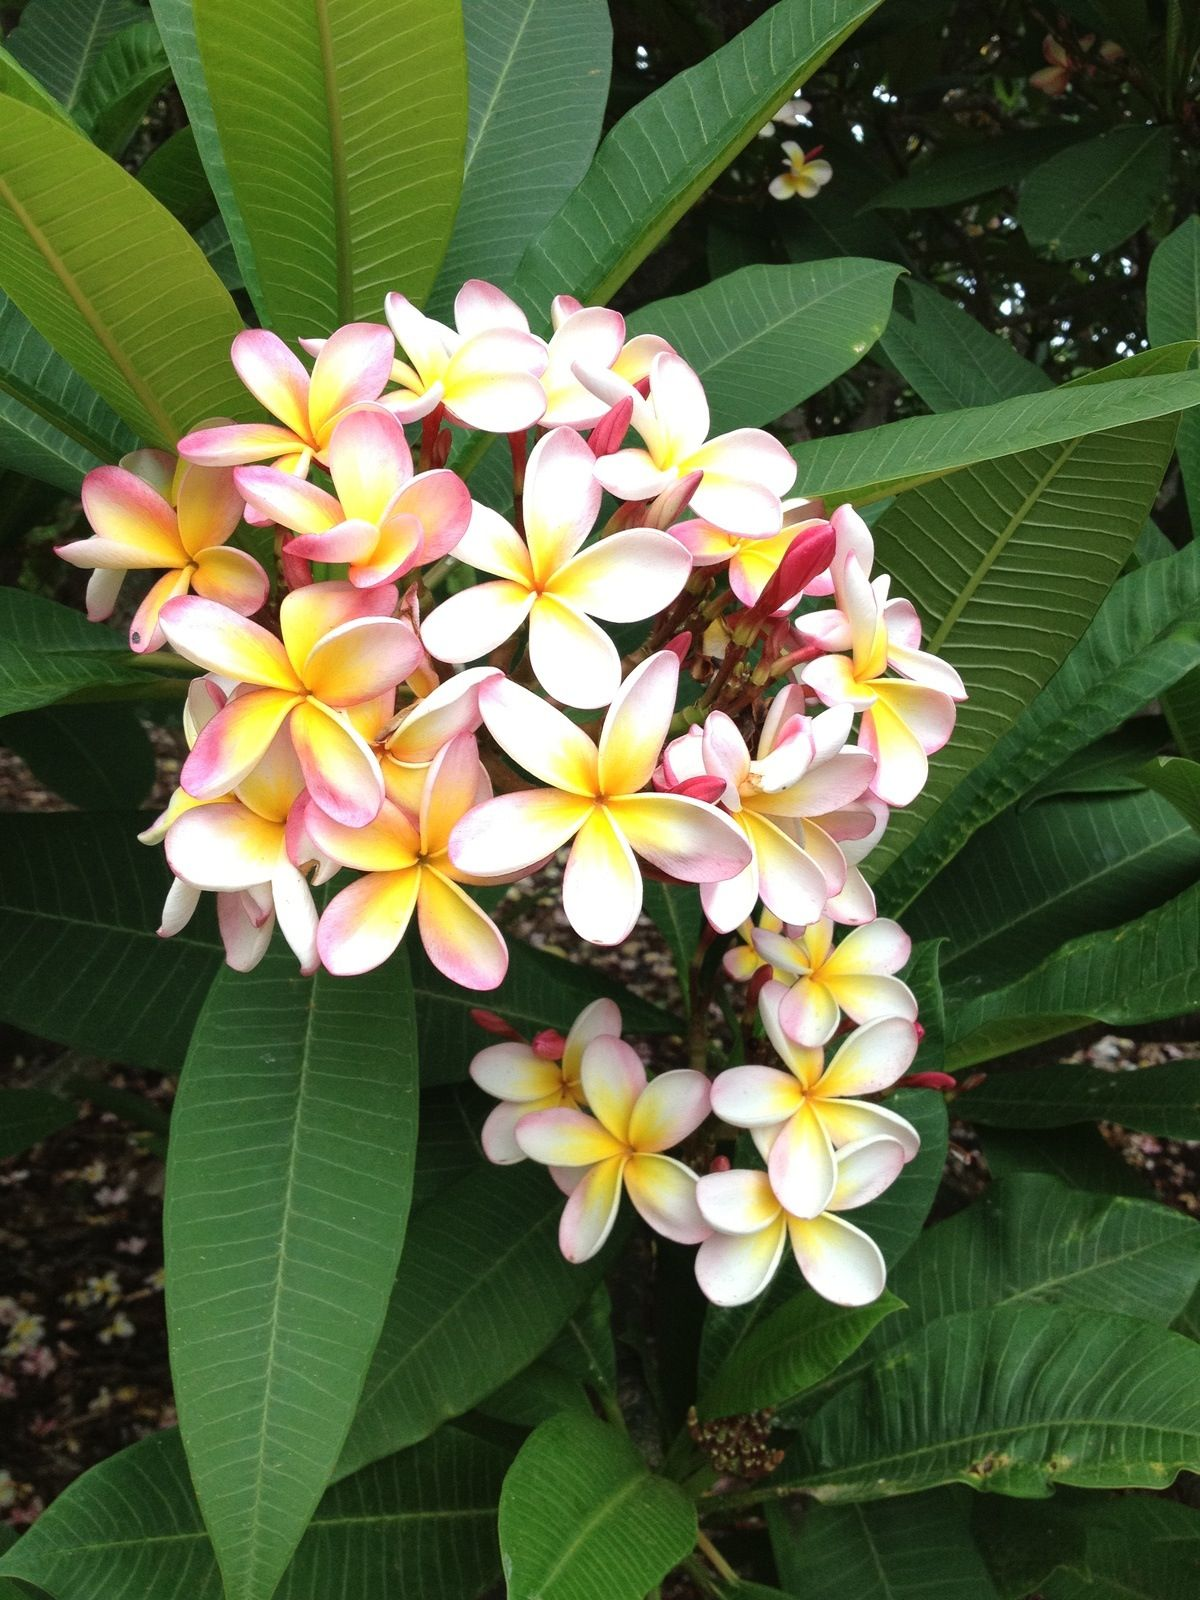 Tropical Flower On Koh Samui Thailand: Plumeria Flowers, Tropical